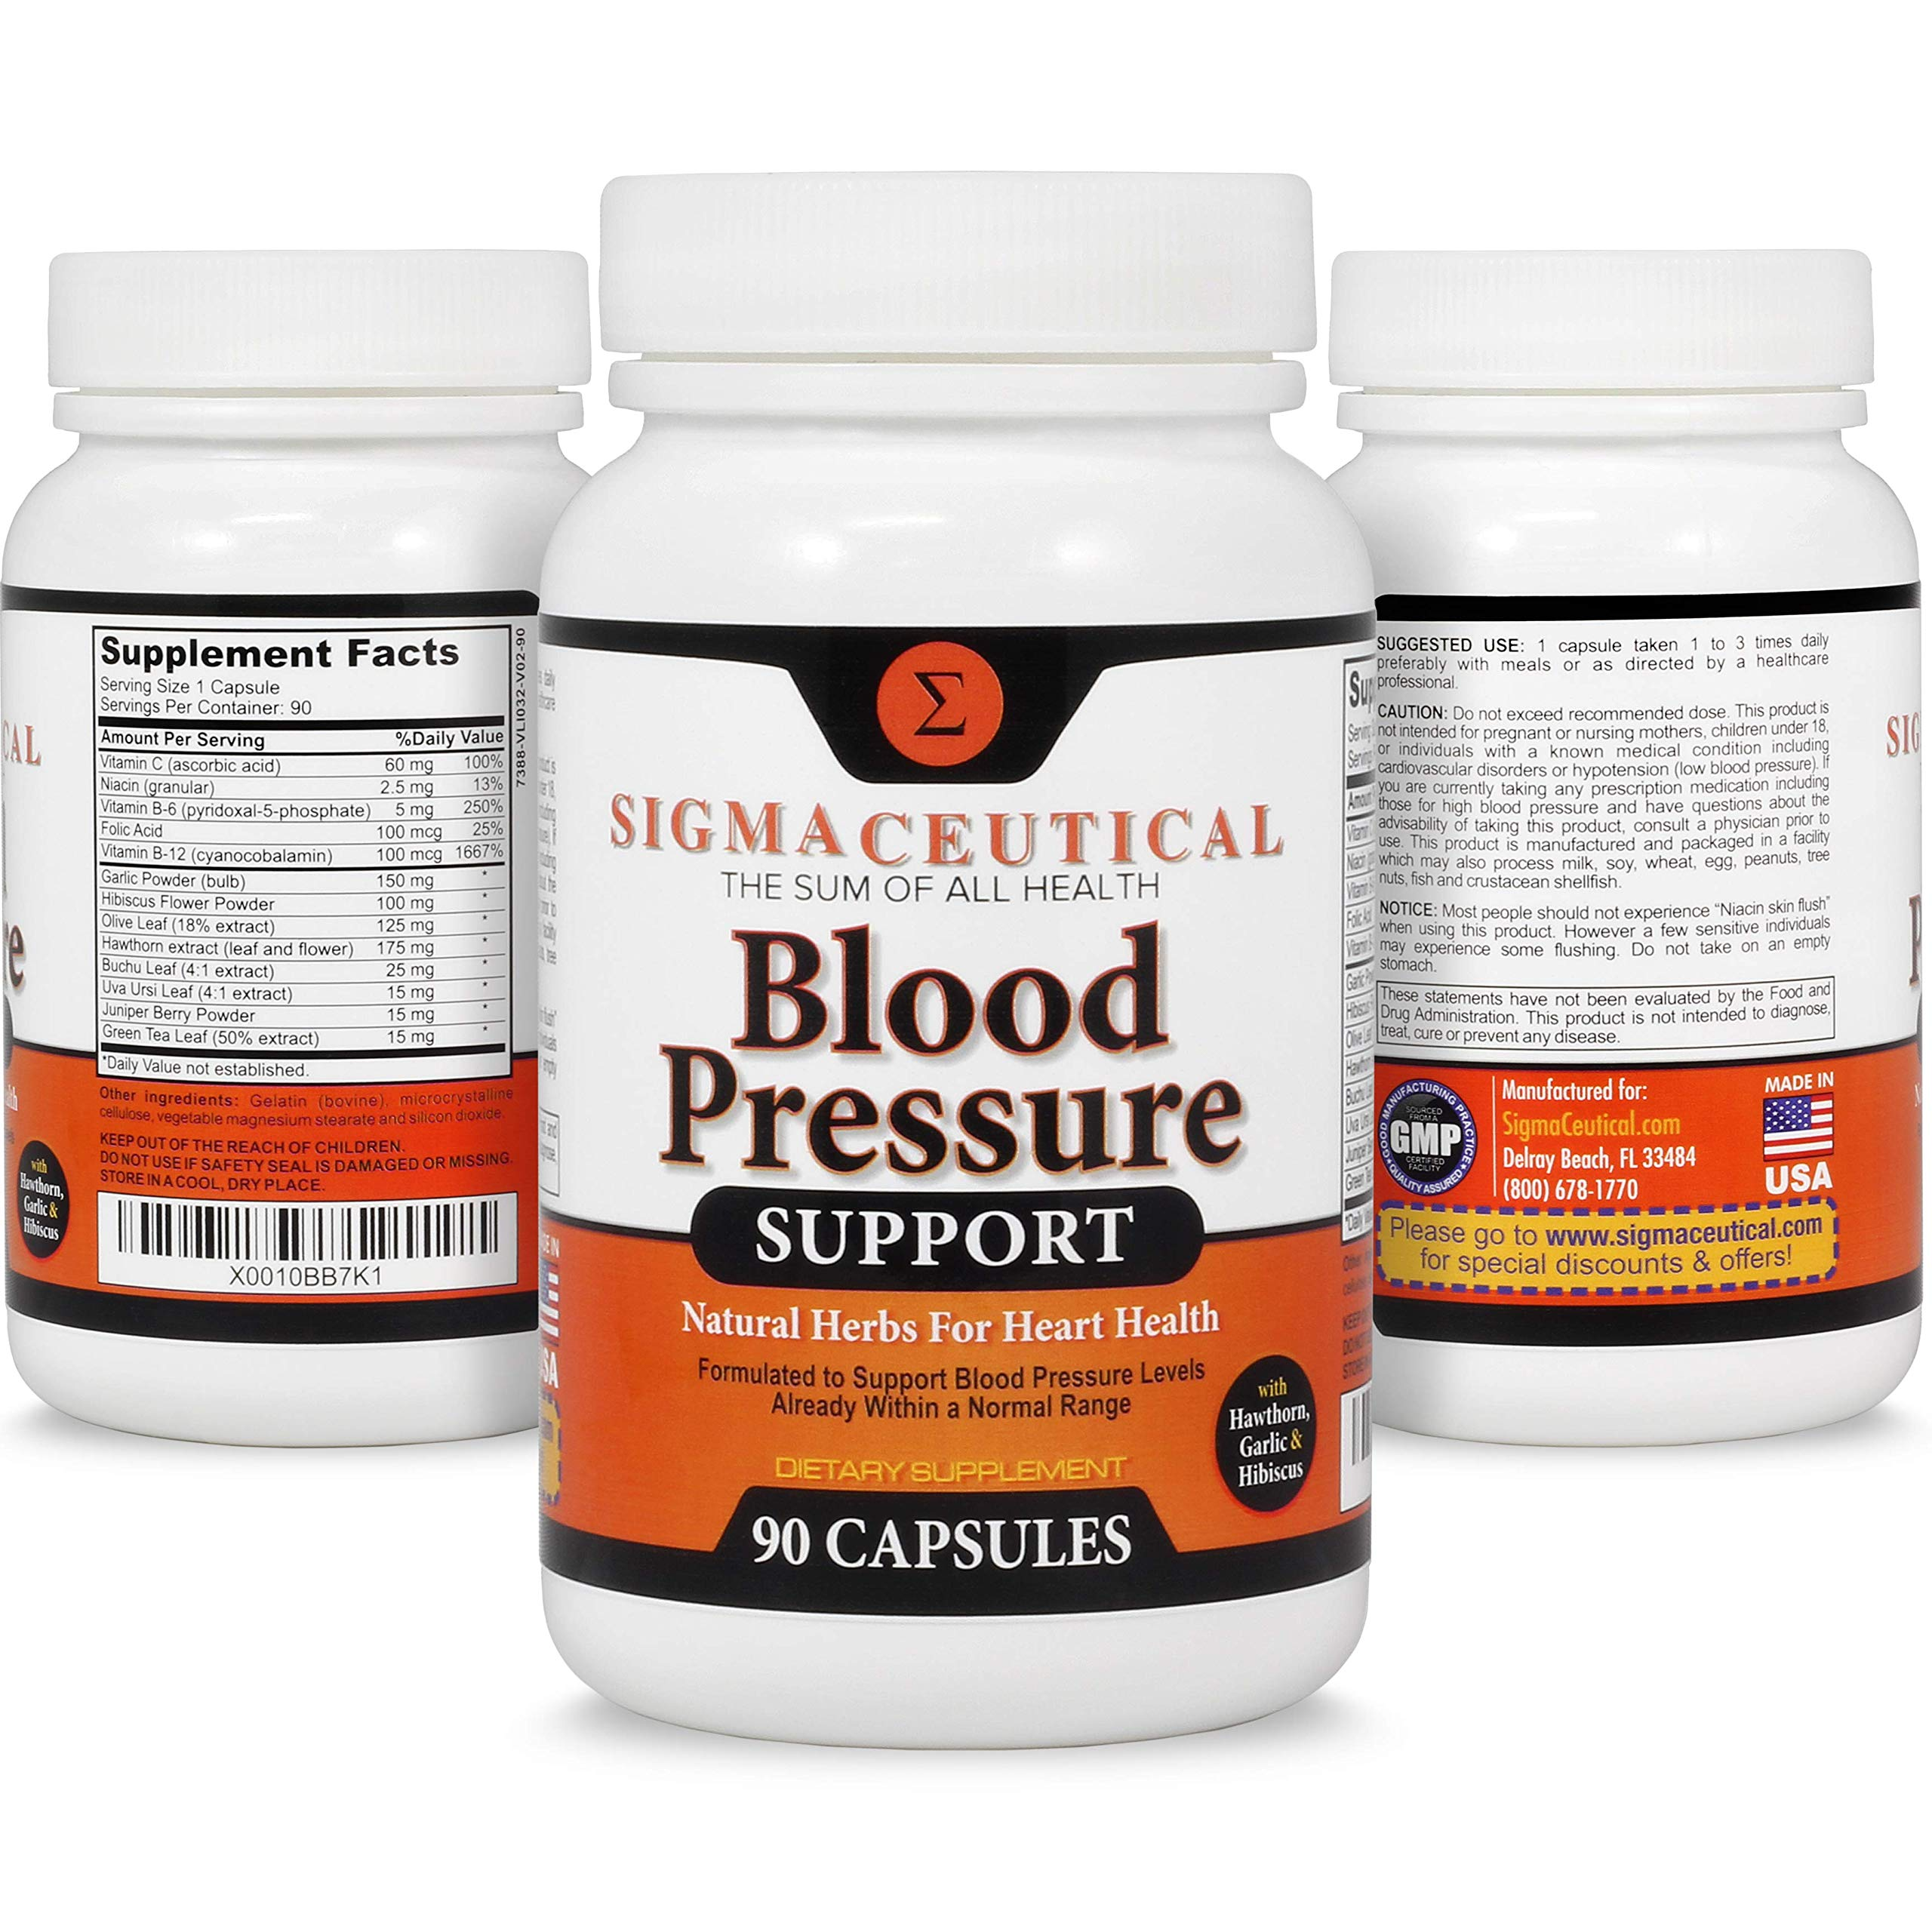 5 Pack of Premium Blood Pressure Support Formula - High Blood Pressure Supplement w/Vitamins, Hawthorn Extract, Olive Leaf, Garlic Extract & Hibiscus Supplement - 90 Capsules Each by Sigmaceutical (Image #6)